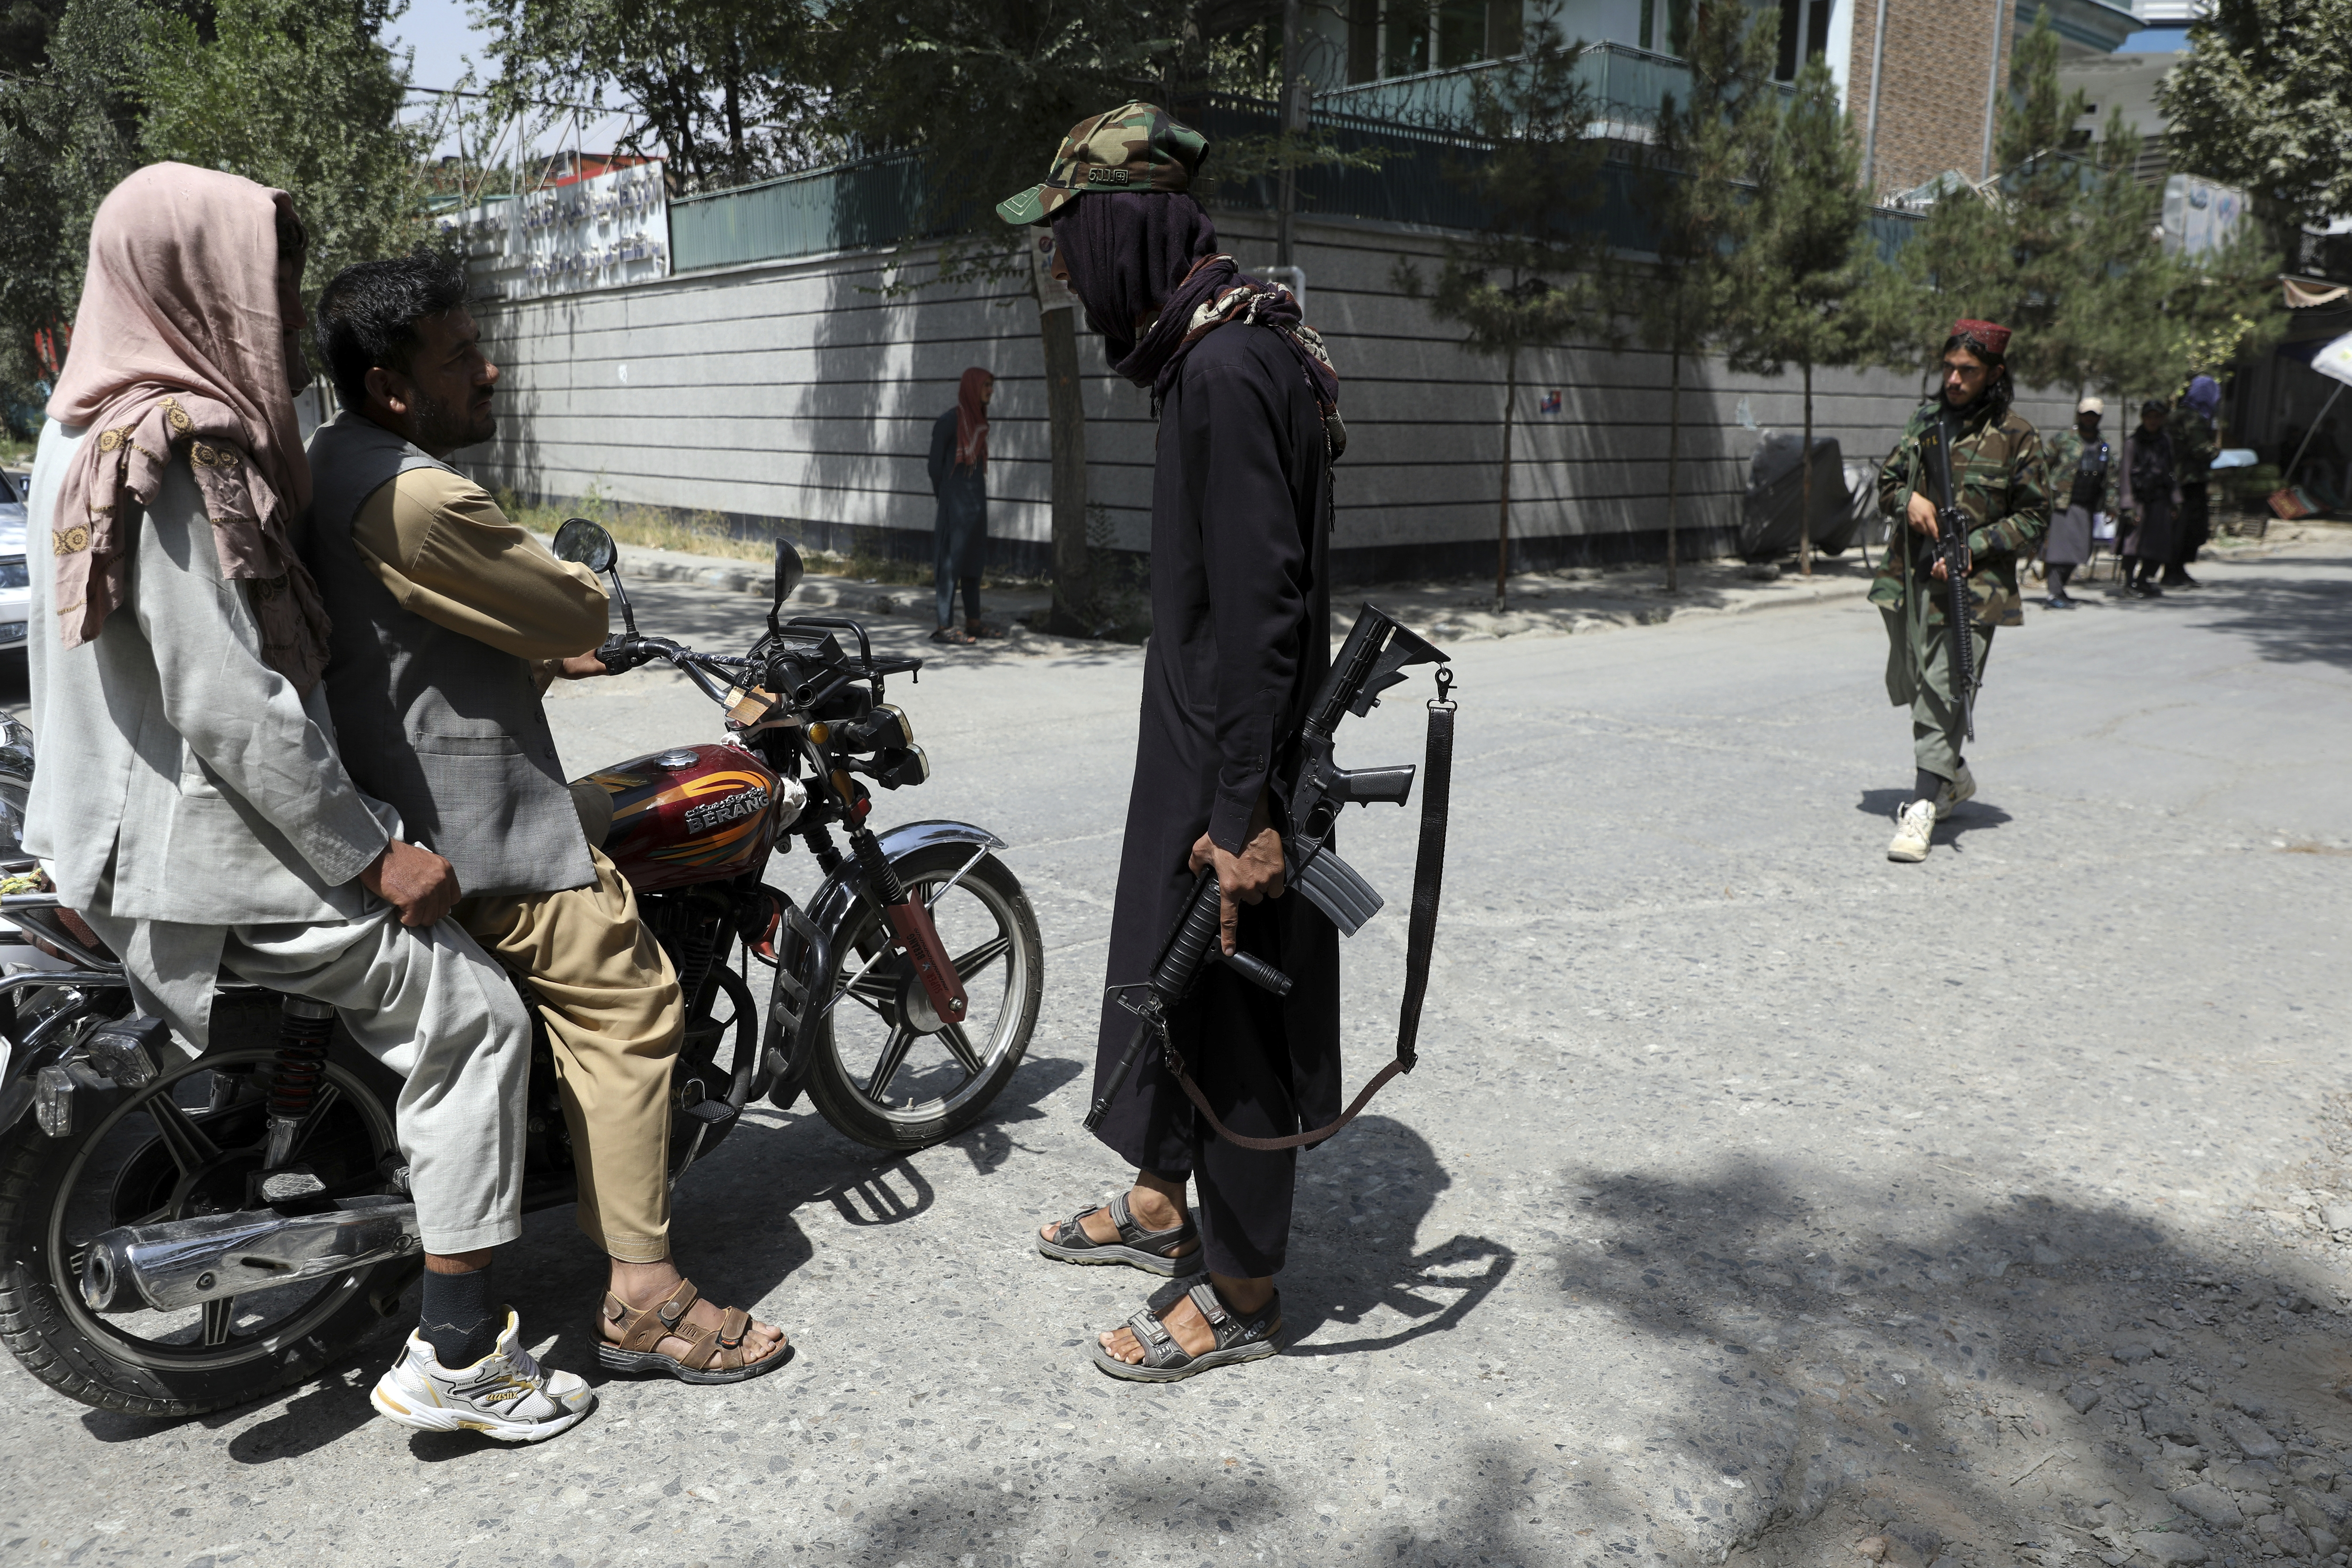 Taliban fighters stand guard at a checkpoint in the Wazir Akbar Khan neighborhood in Kabul.